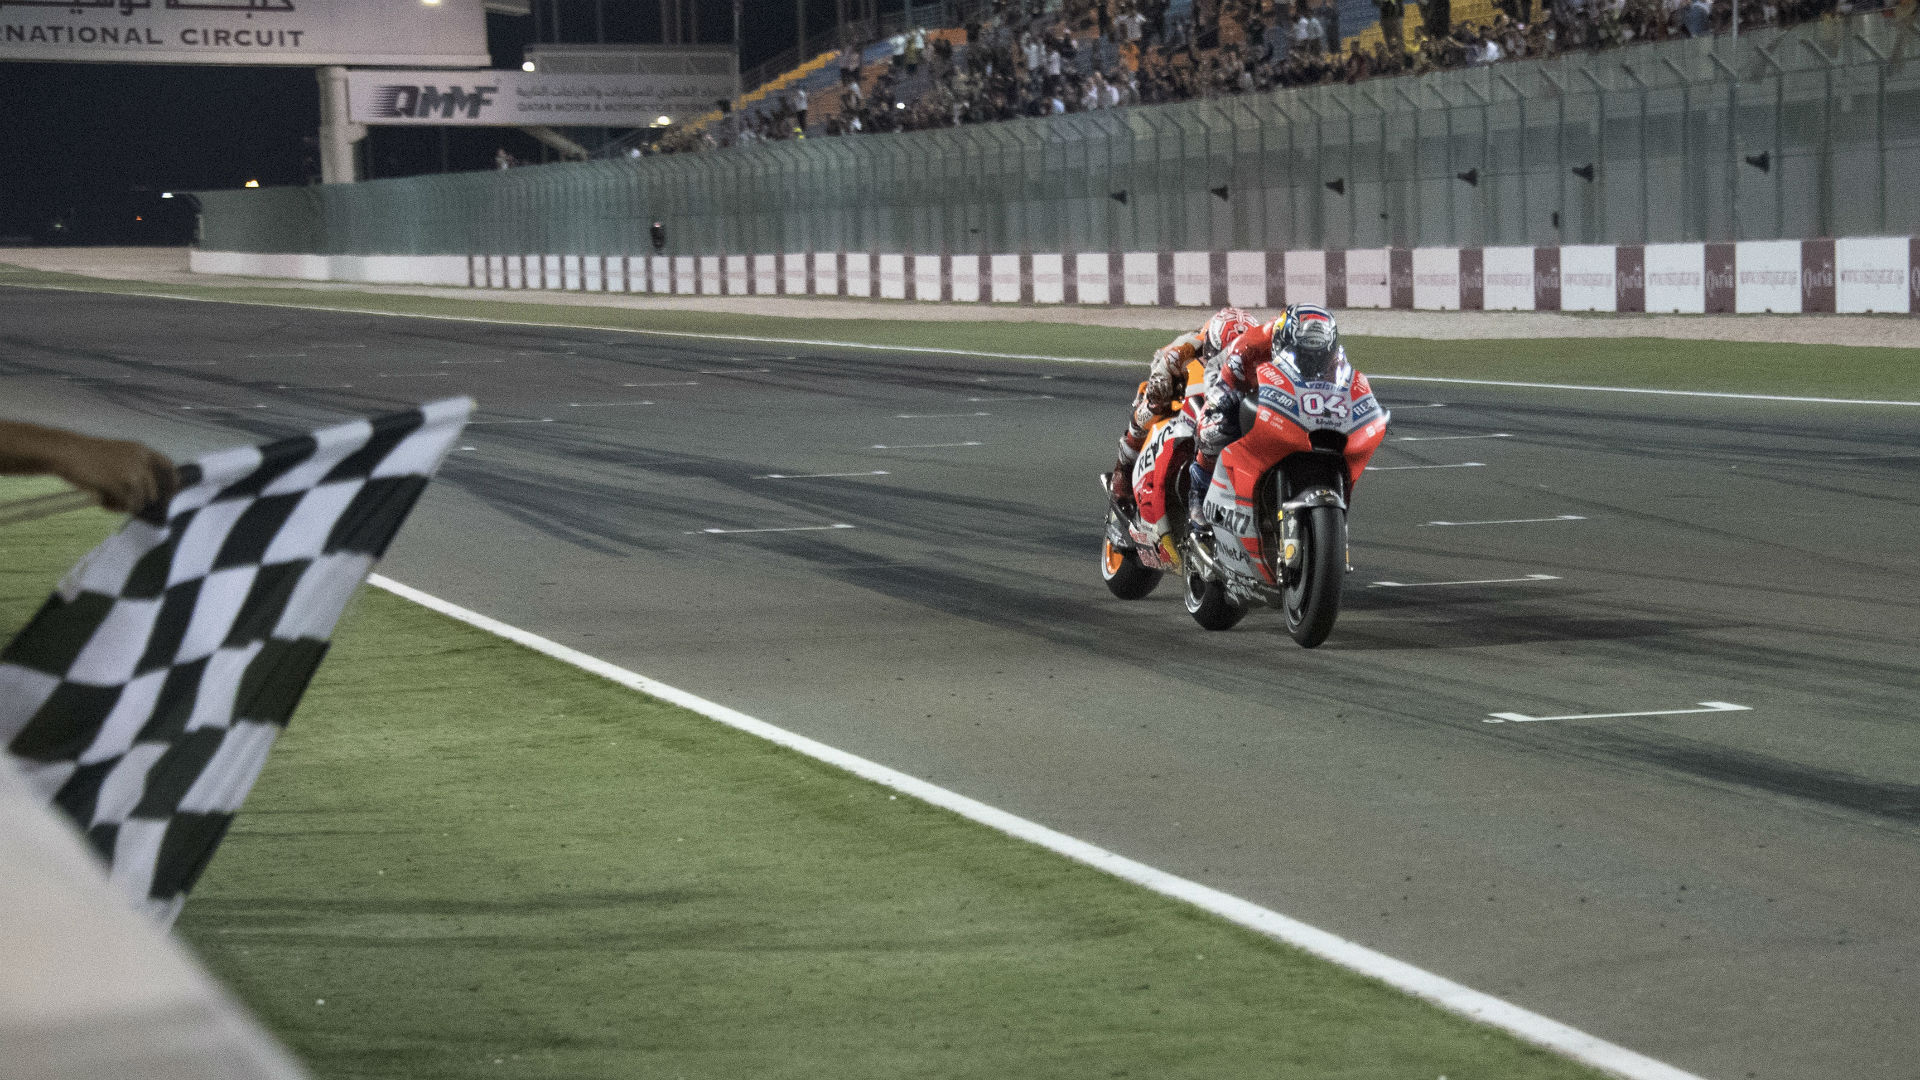 Andrea Dovizioso started the MotoGP season with a win, but Marc Marquez was content with second in Qatar.